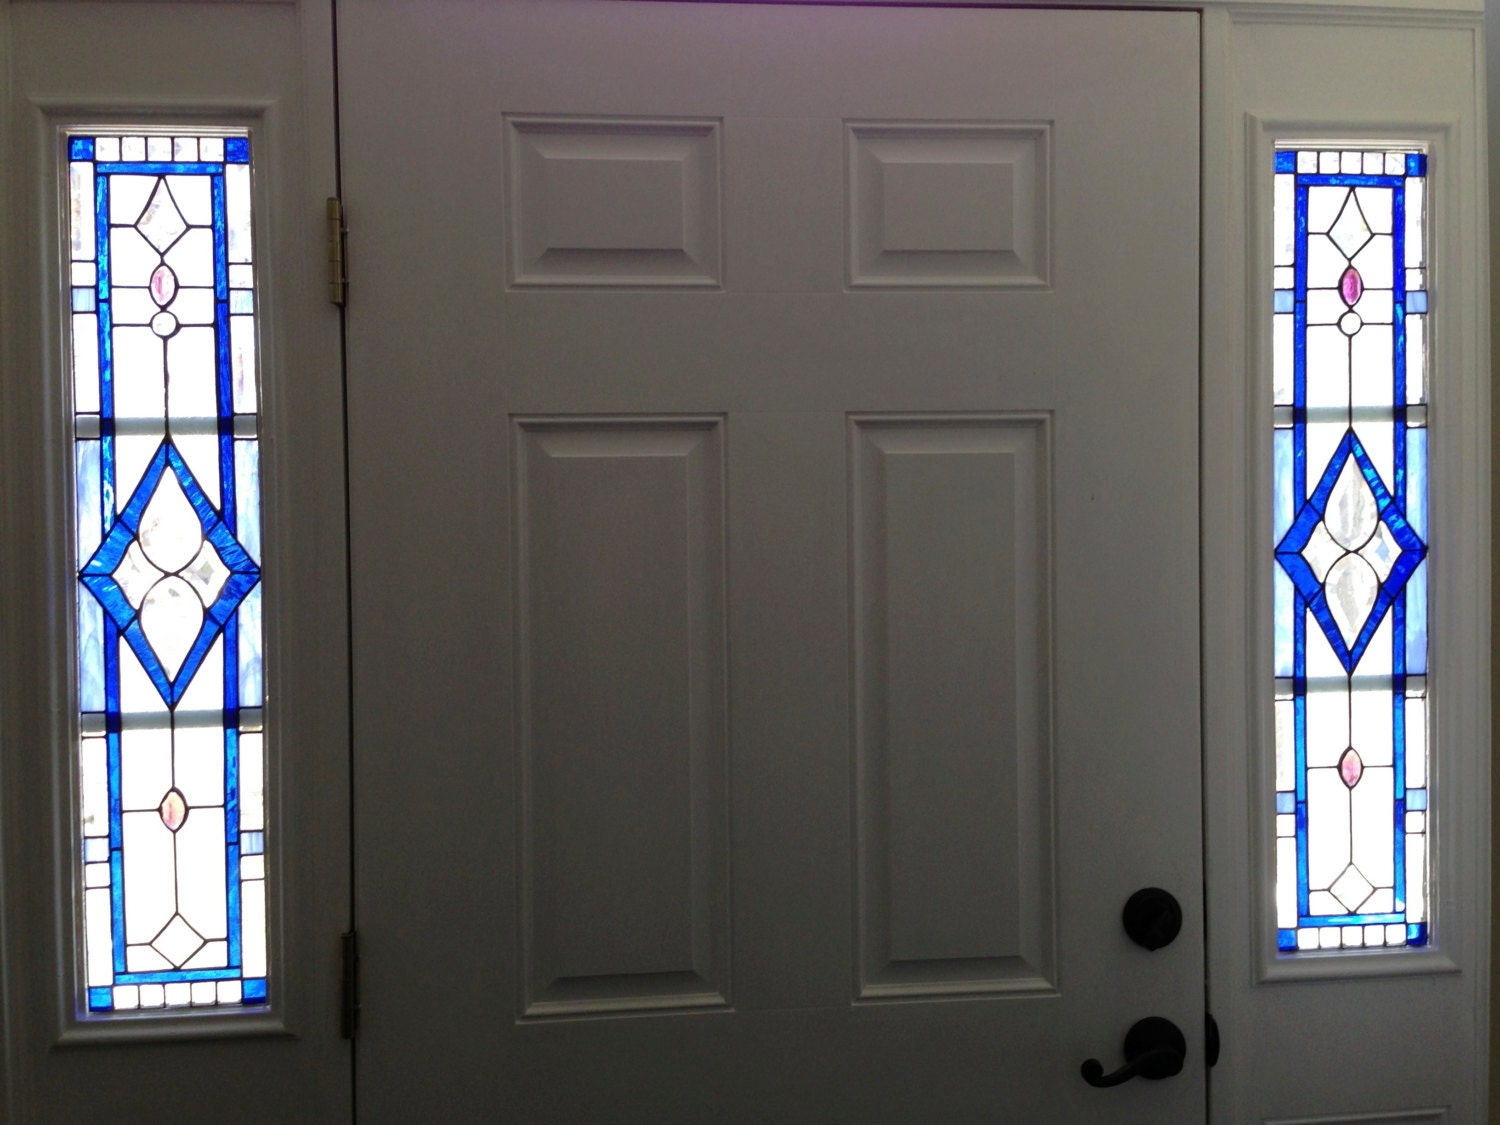 1125 #0830C3 Stained Glass Sidelights image Stained Glass Entry Doors 41831500